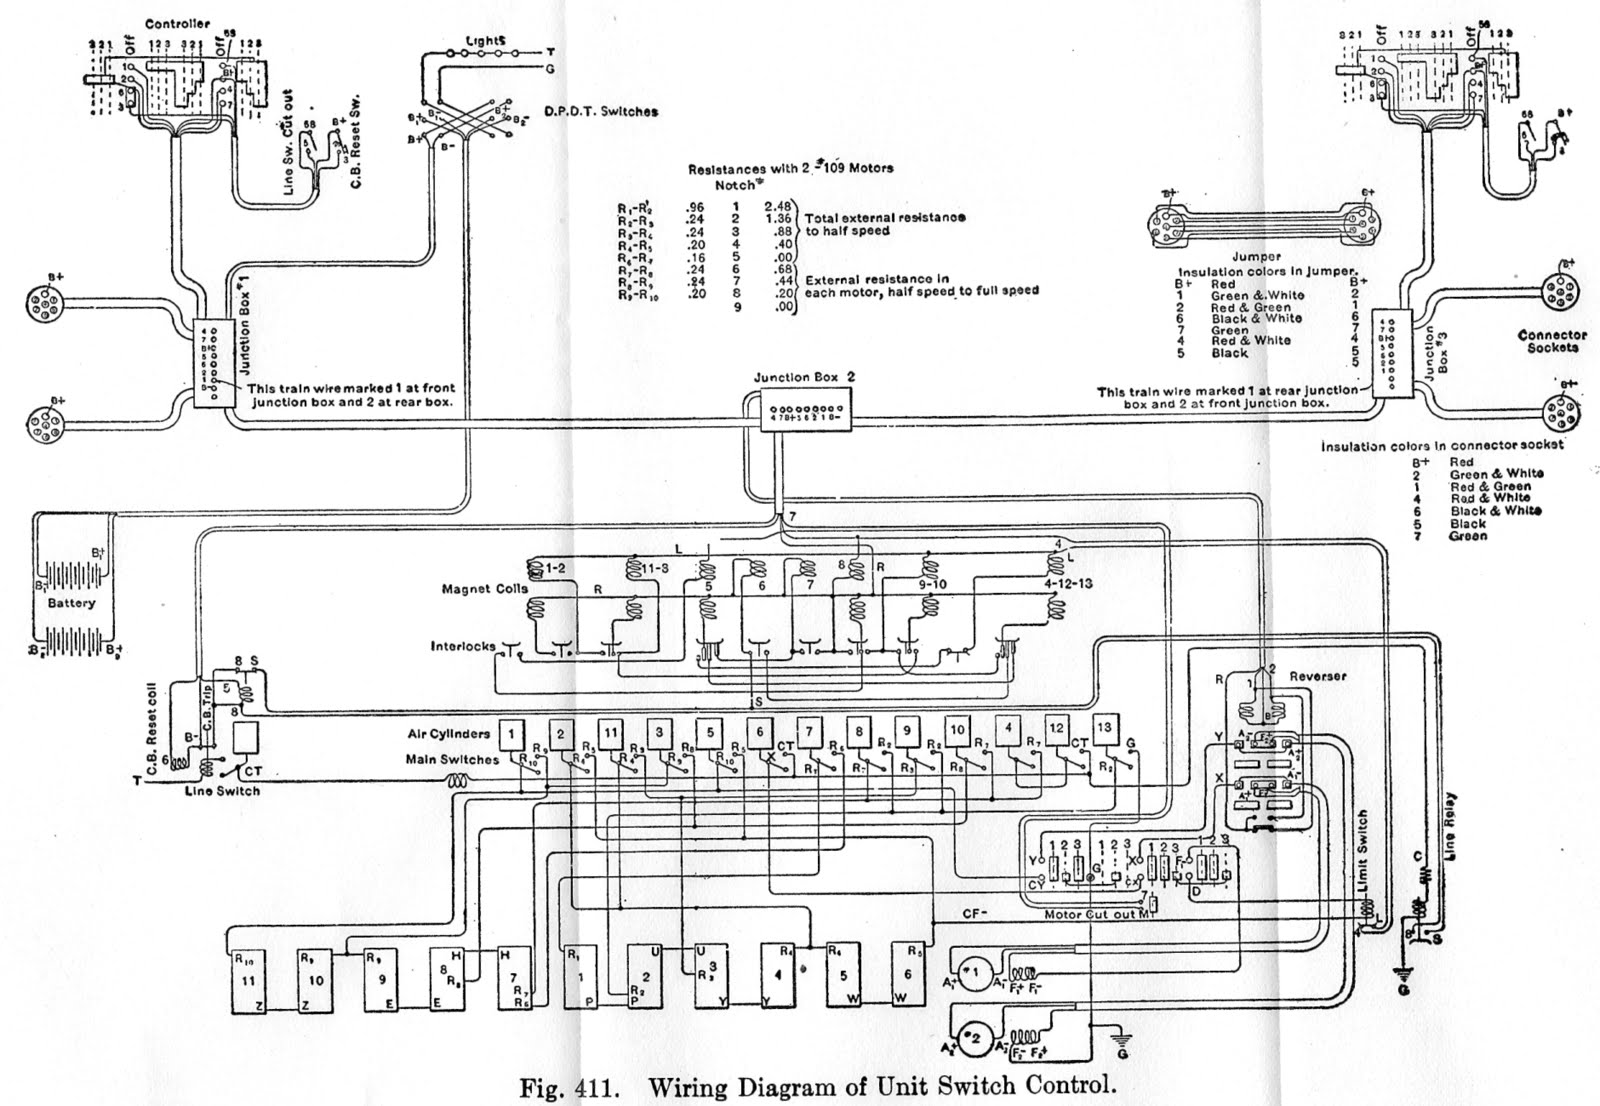 Hicks car works control circuit diagrams cheapraybanclubmaster Image collections